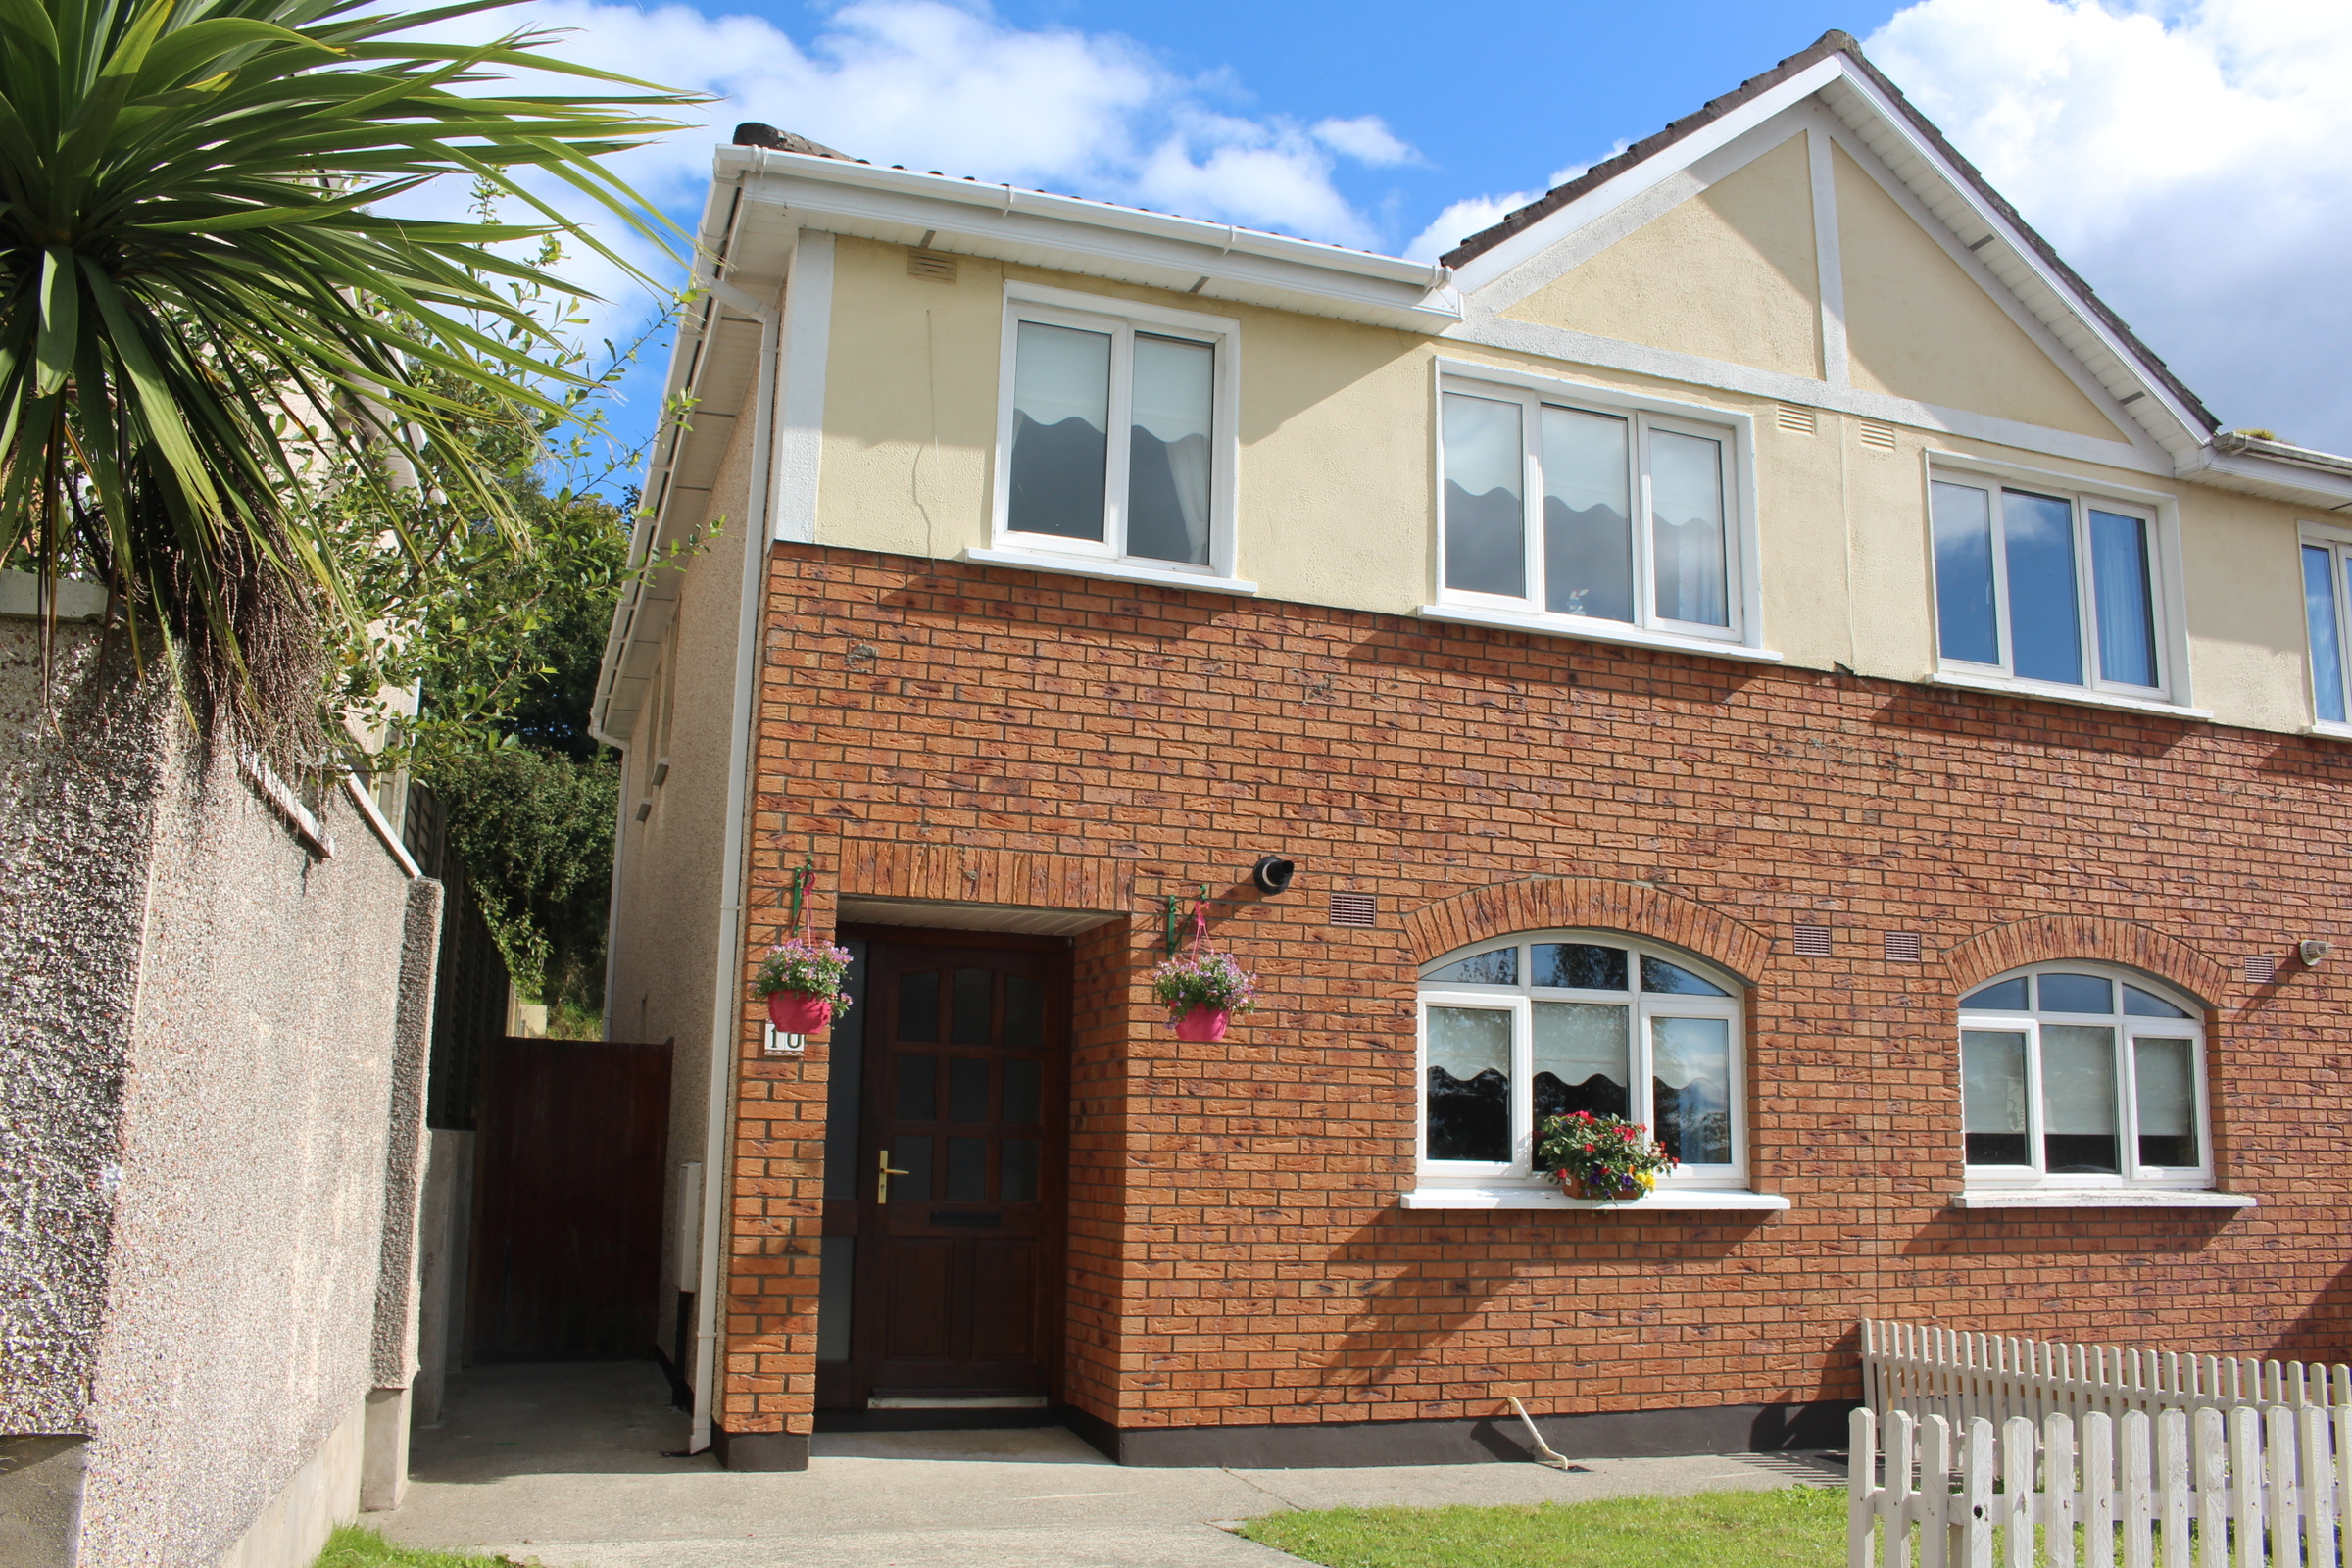 10 Woodlands Green, Arklow, Co. Wicklow